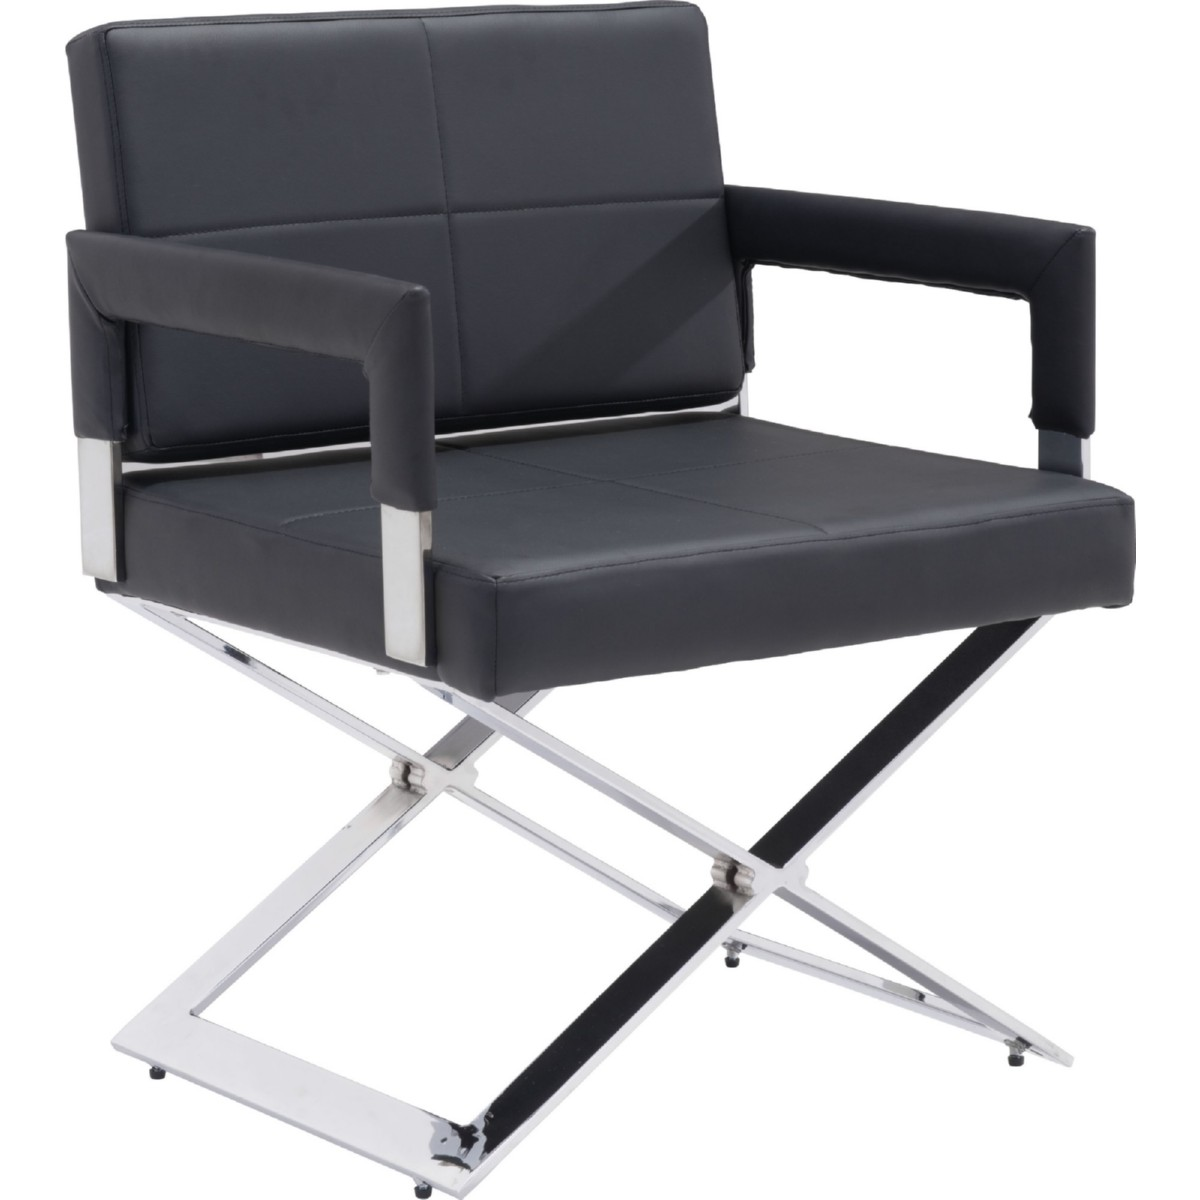 Zuo Modern 100357 Yes Dining Chair in Black Leatherette on Chrome ...